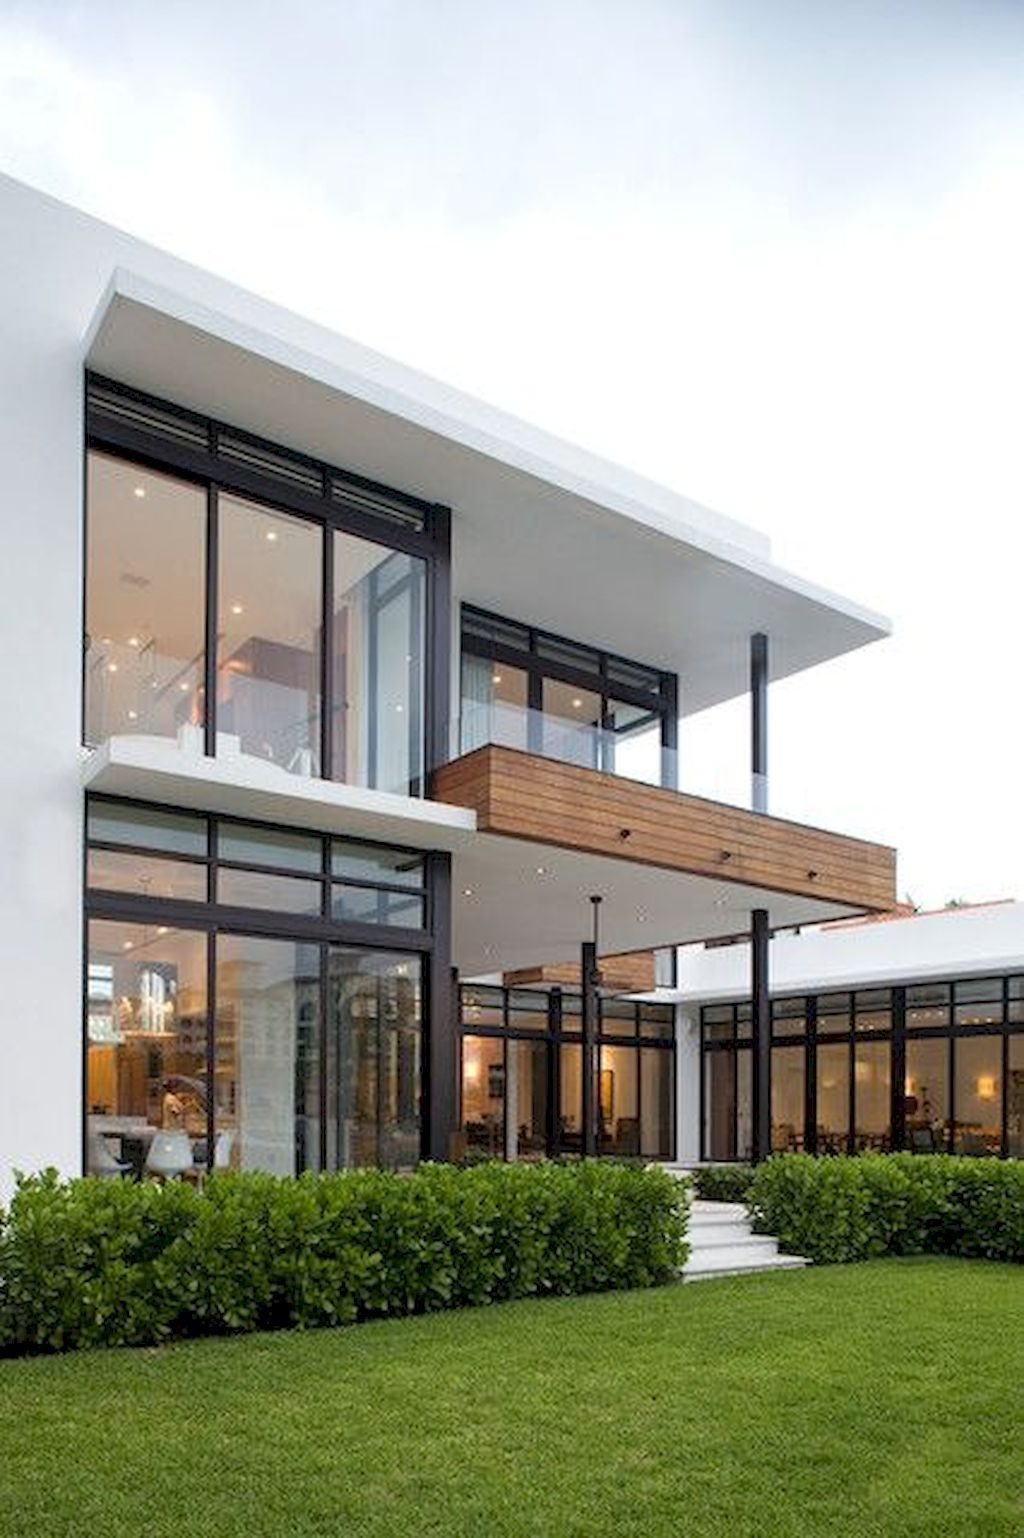 56 Stylish Home Black And White House Exterior Design 11 Oneonroom Modern House Design Modern Glass House Modern House Exterior